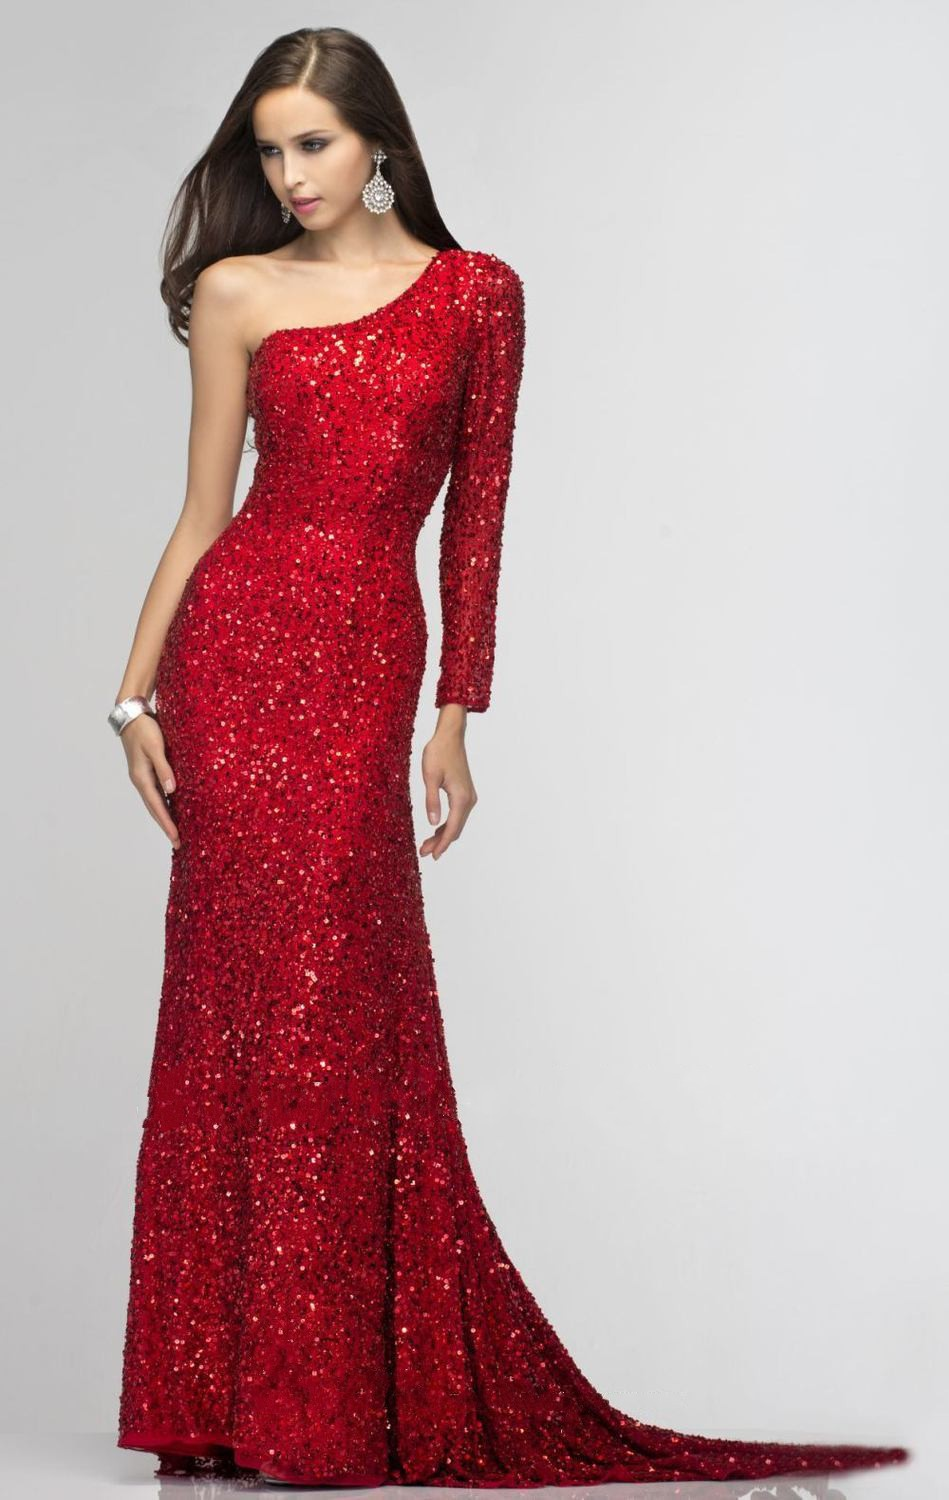 4f5633e35089f Gold silver red sequins beaded one shoulder long sleeve sexy sequins prom  dress one sleeve evening dress